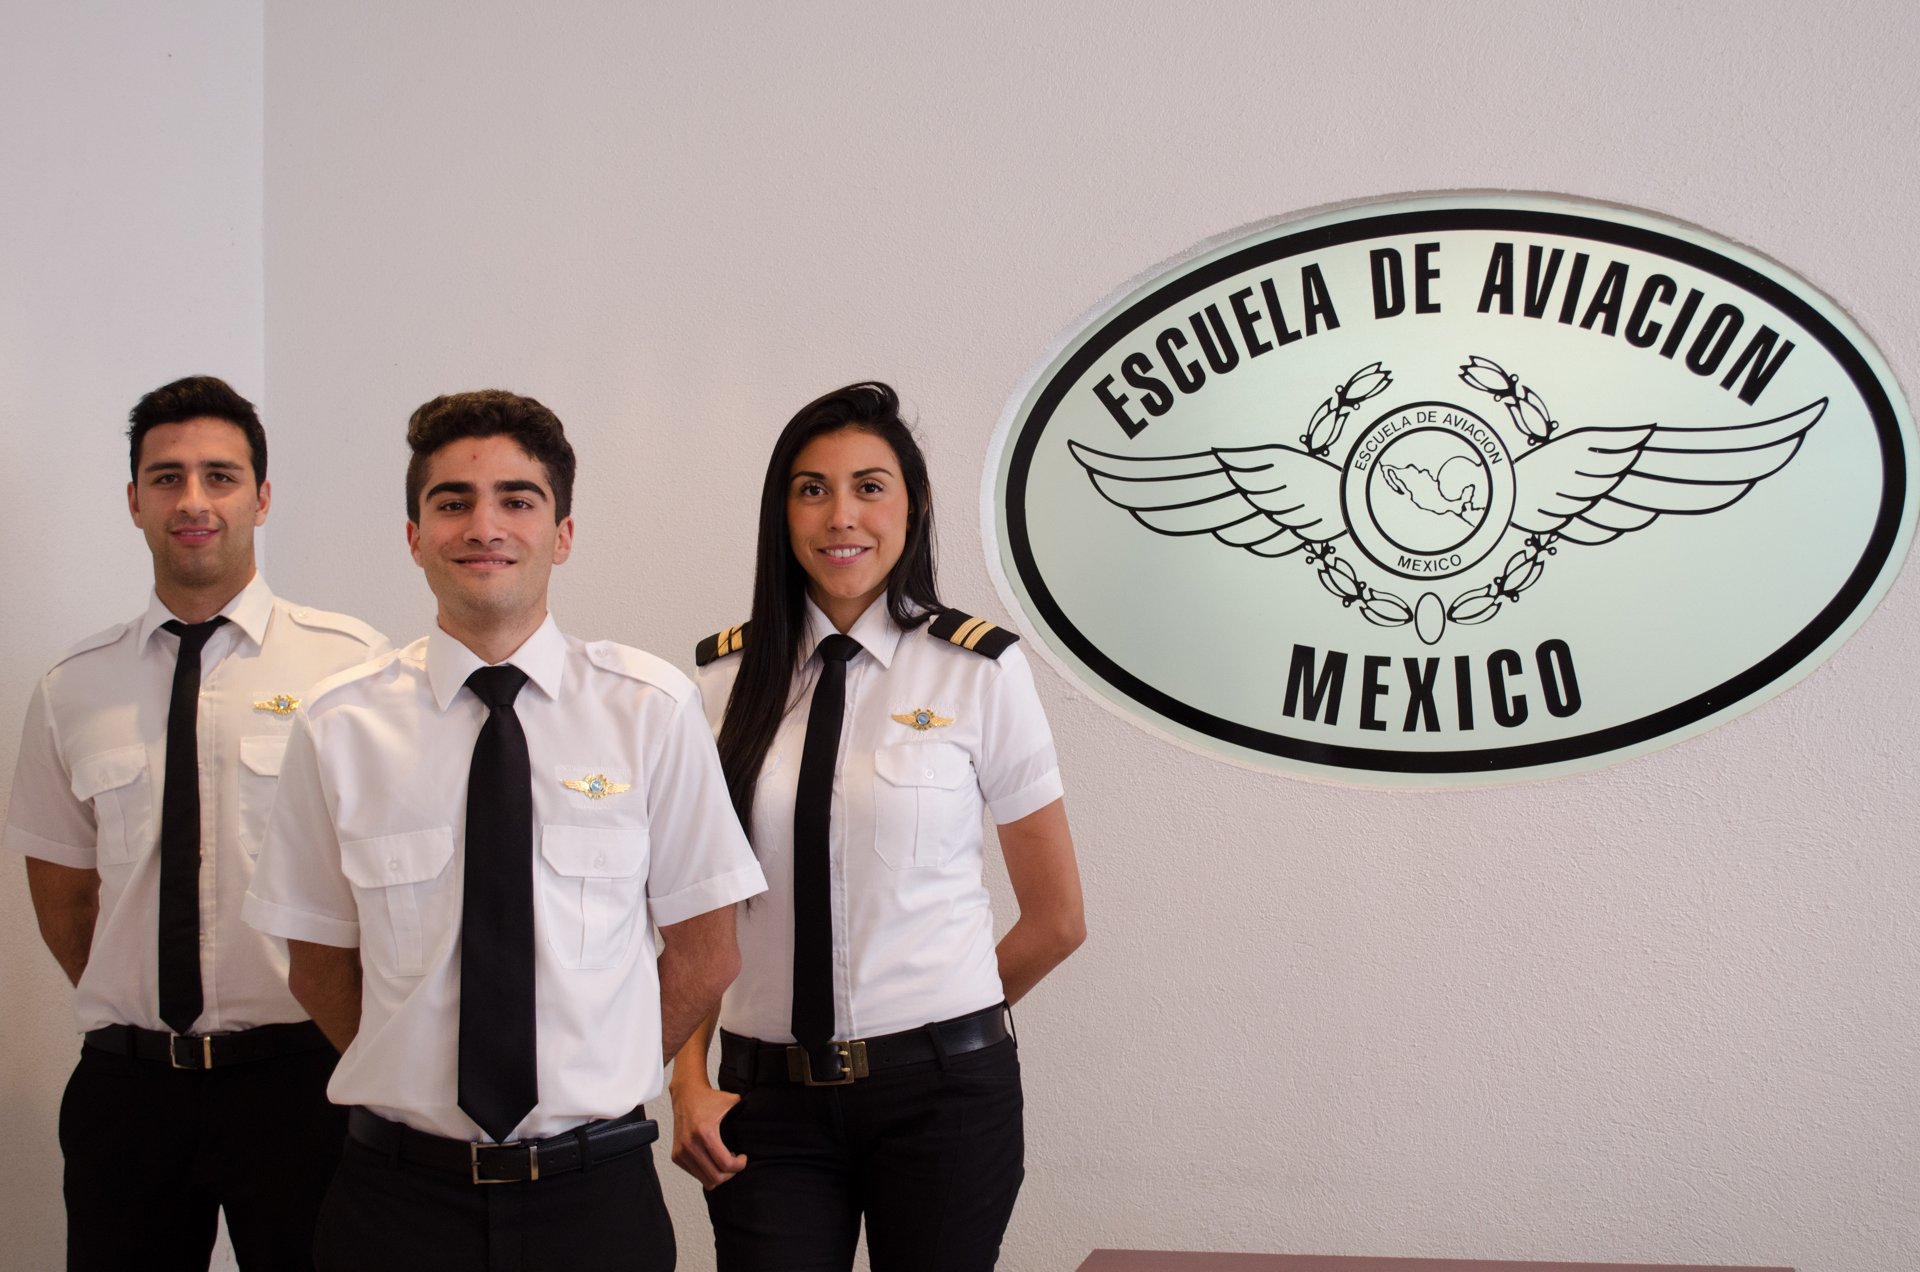 To meet the expected demand for some 540,000 new pilots over the next two decades, Airbus has created a pilot cadet training programme that includes ab initio training; the  Escuela de Aviacion Mexico pilot school is its launch partner